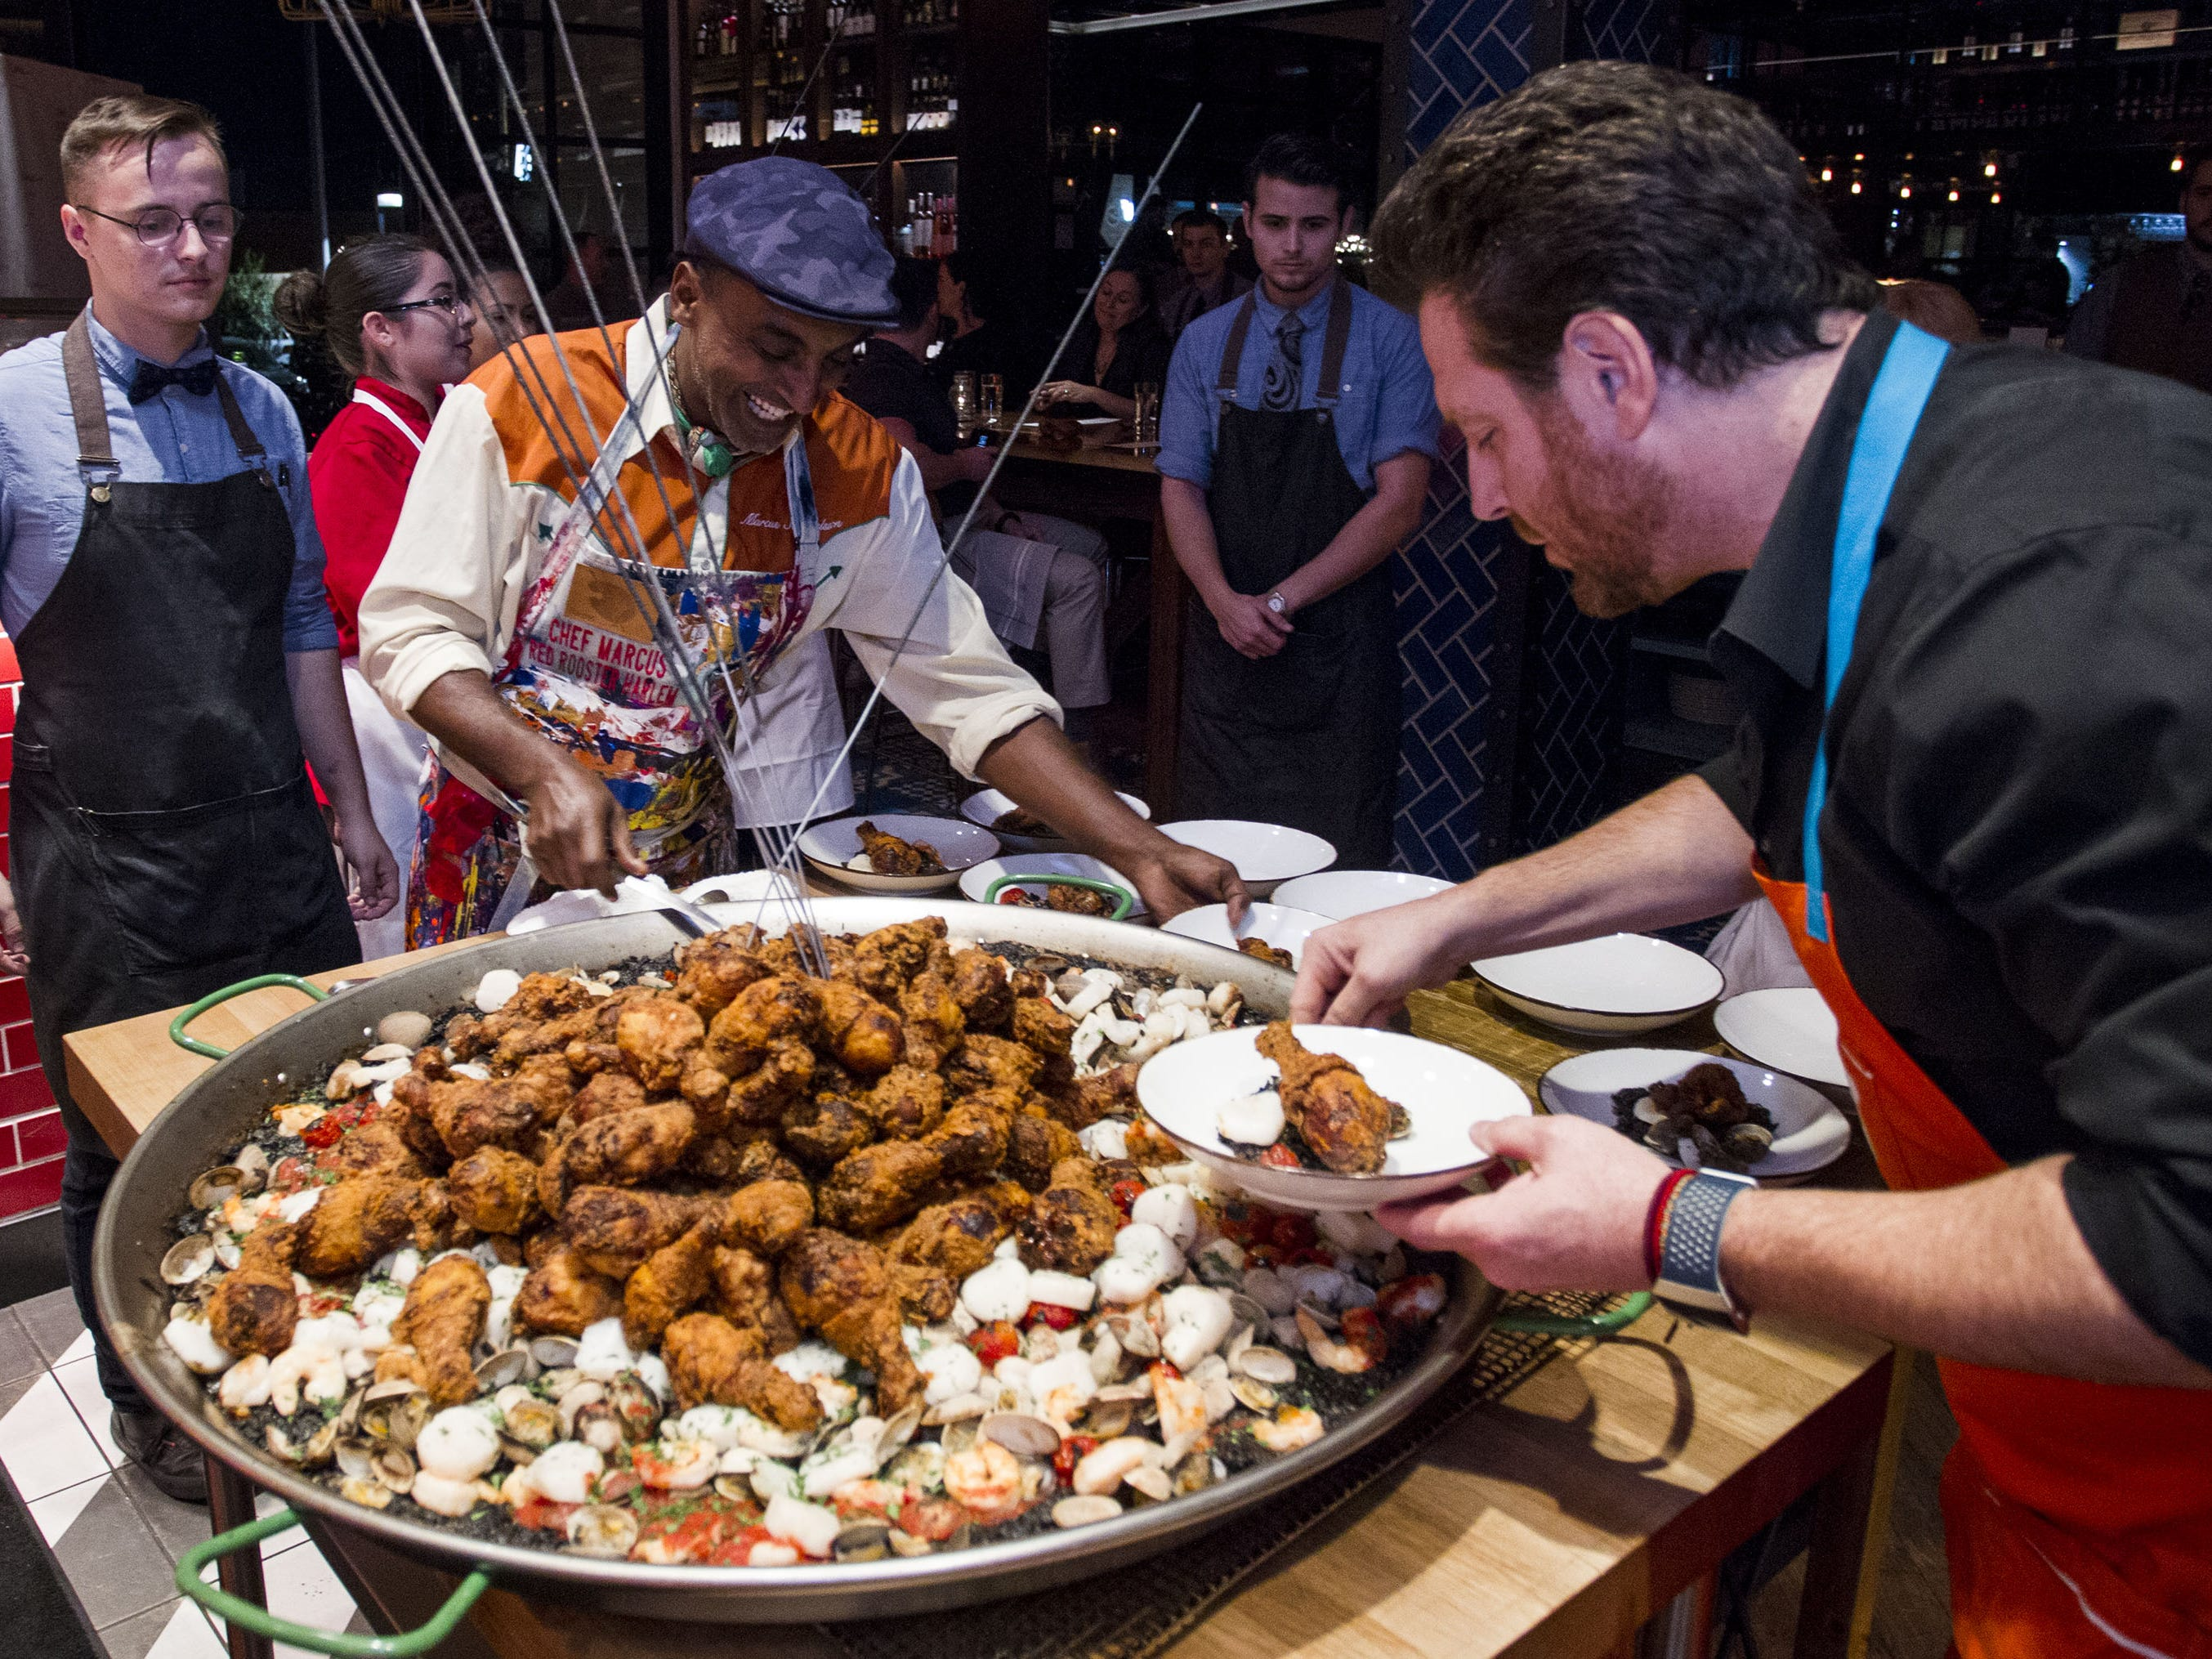 Chefs Marcus Samuelsson and Scott Conant serve their fried chicken paella to dinner guests during the exclusive kickoff dining event at Mora Italian for azcentral Wine & Food Experience.